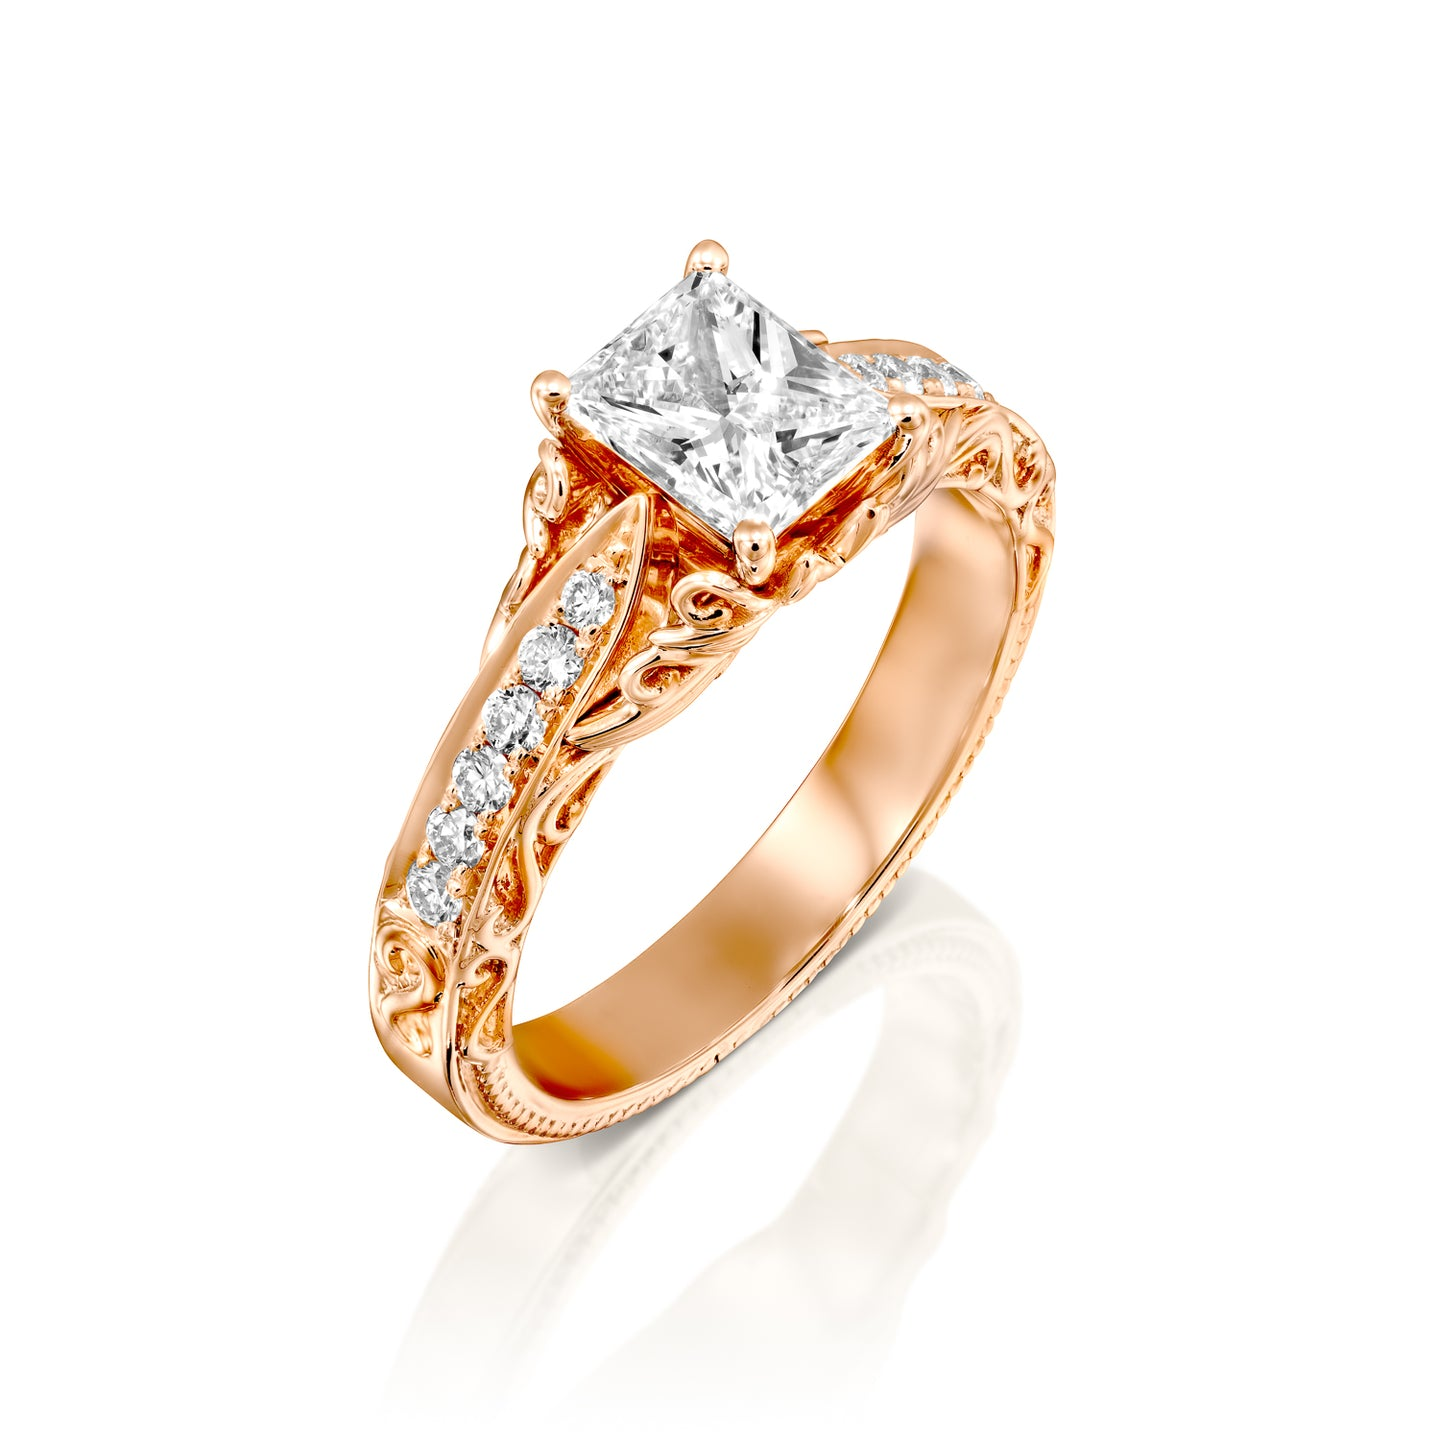 0.7 Carat 14K Rose Gold Diamond